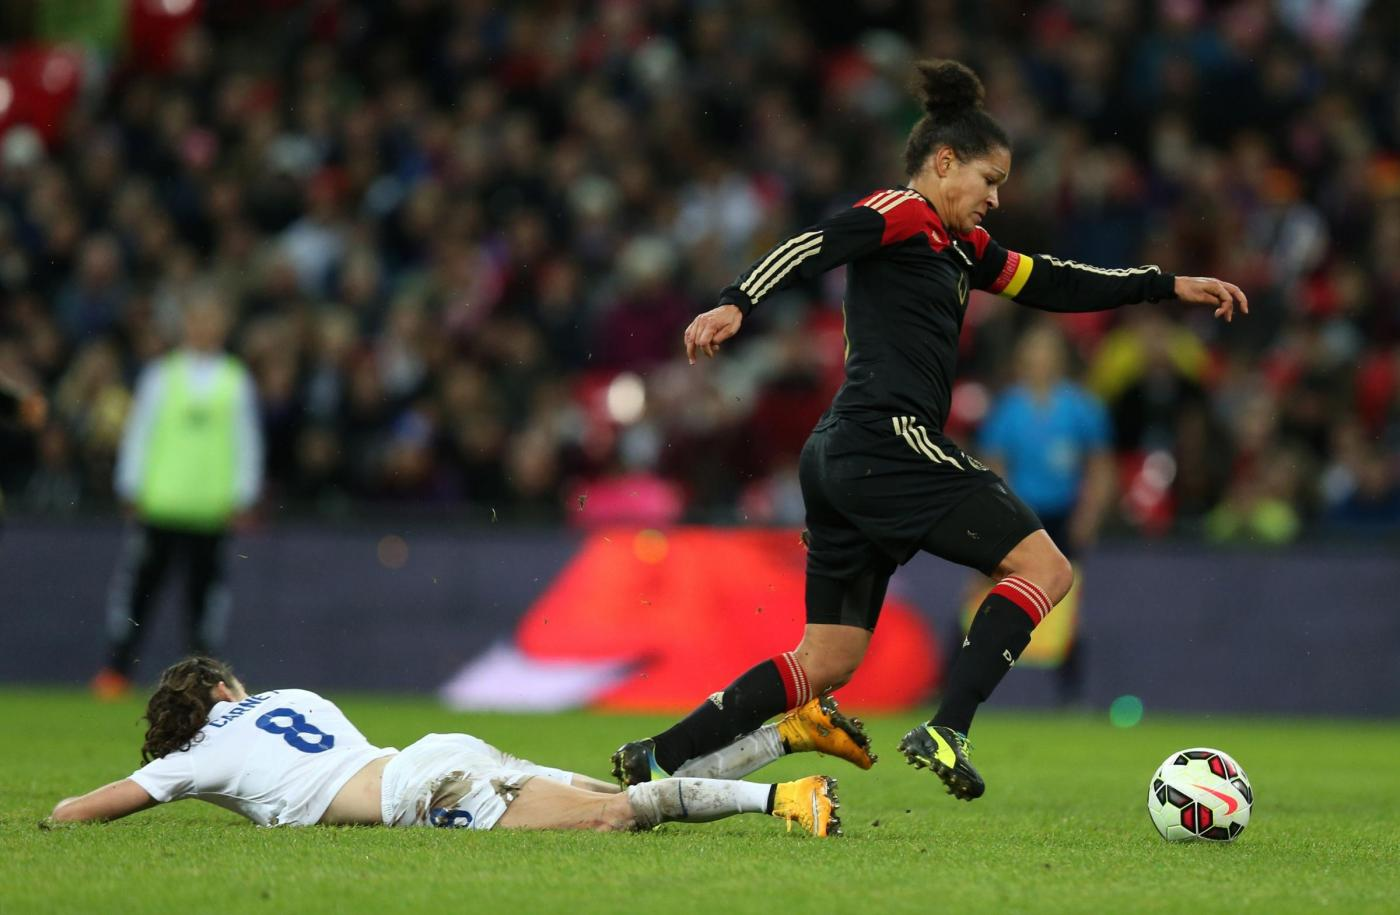 England's Karen Carney and Germany's Celia Sasic during the International Friendly at Wembley Stadium, London. PRESS ASSOCIATION Photo. Picture date: Sunday November 23, 2014. See PA story SOCCER England Women. Photo credit should read: Mike Egerton/PA Wire. RESTRICTIONS: Editorial use only. Maximum 45 images during a match. No video emulation or promotion as 'live'. No use in games, competitions, merchandise, betting or single club/player services. No use with unofficial audio, video, data, fixtures or club/league logos.